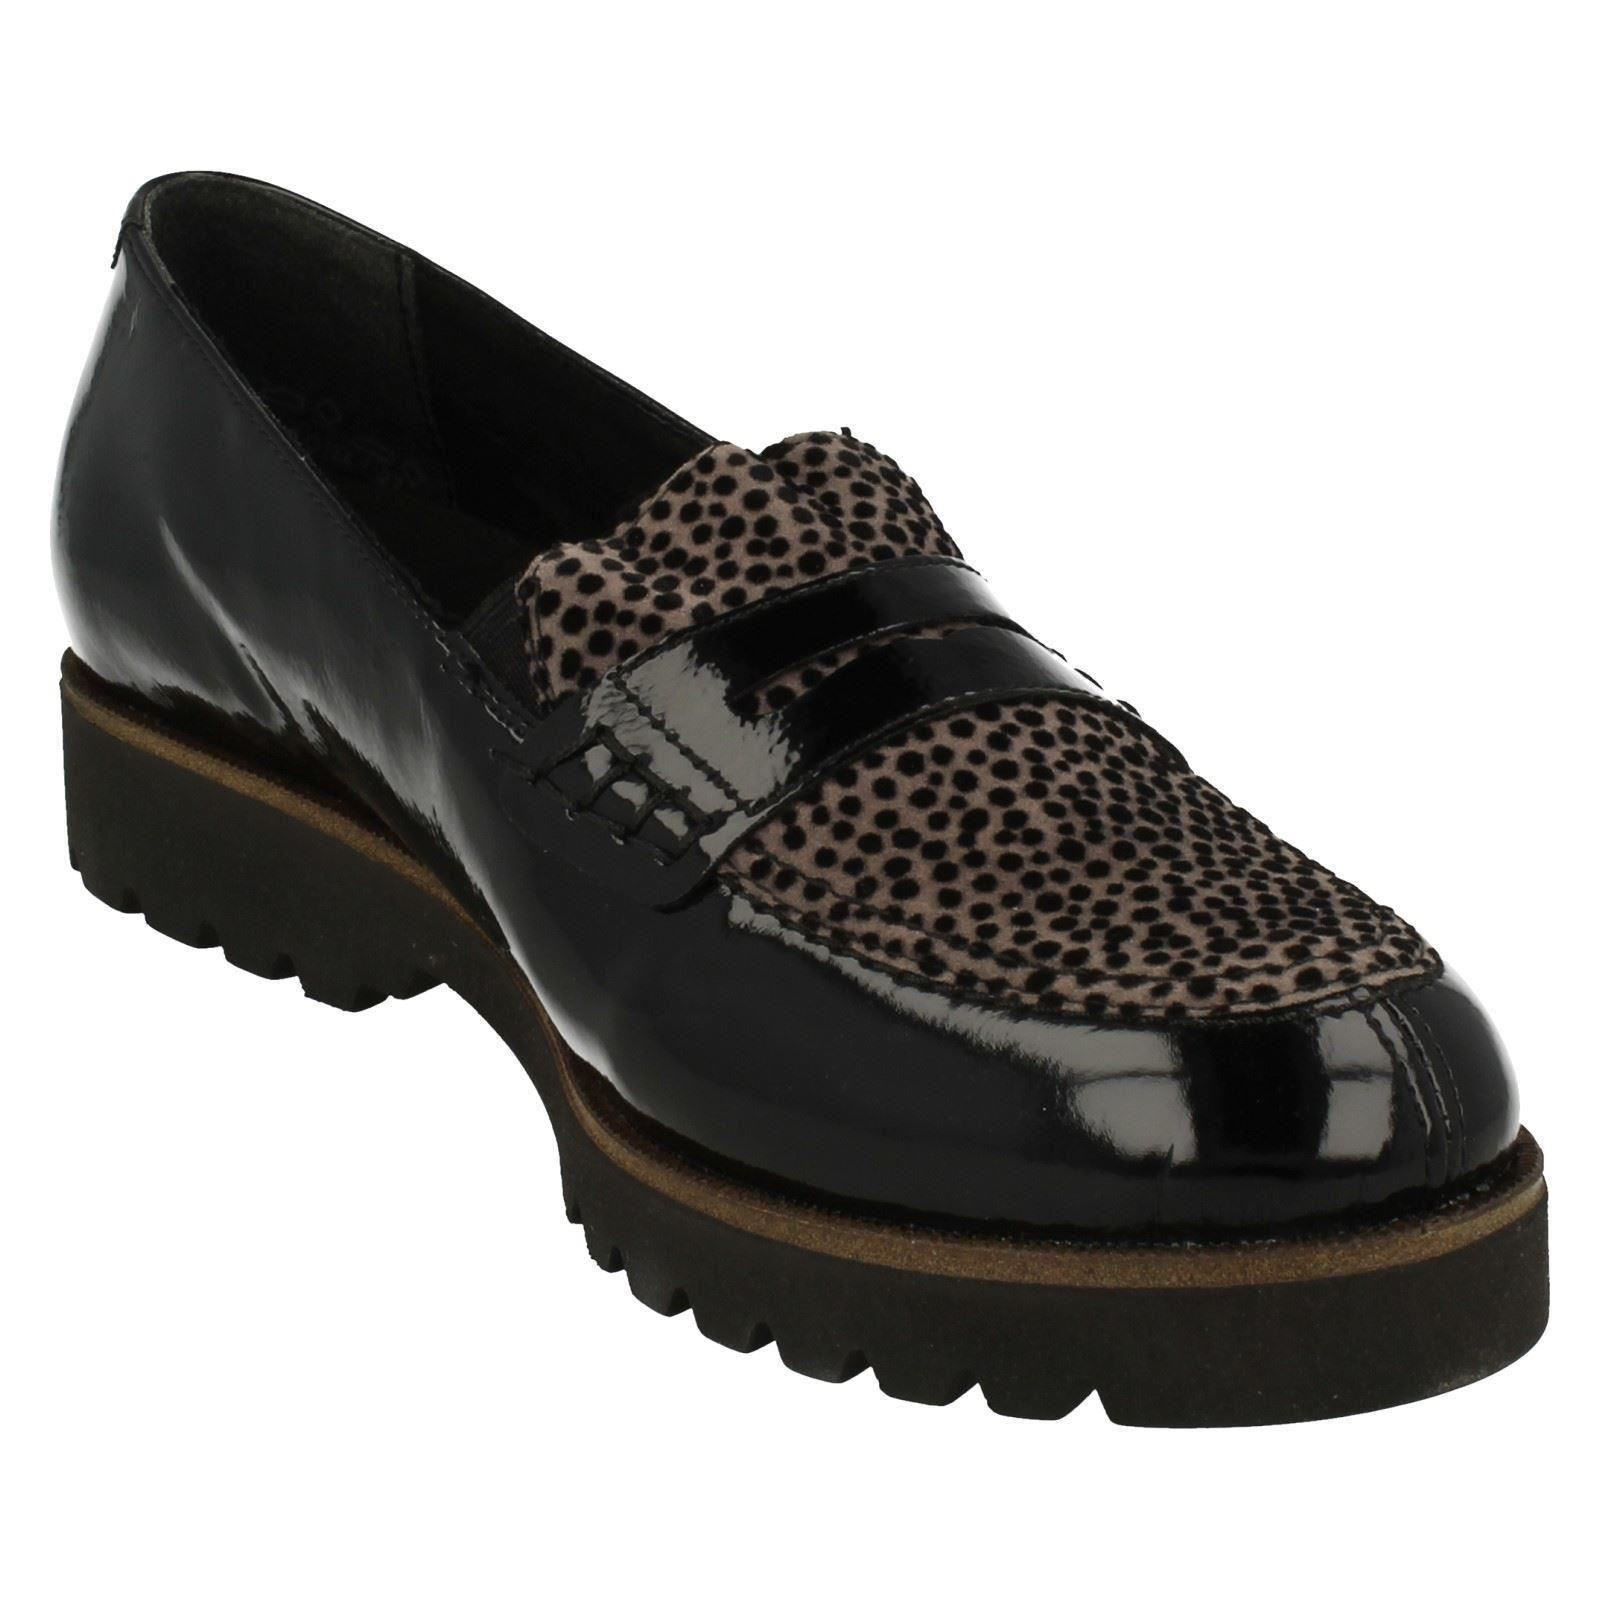 Ladies Remonte Shoes Loafer Style Shoes Remonte 'D0101' fac10c